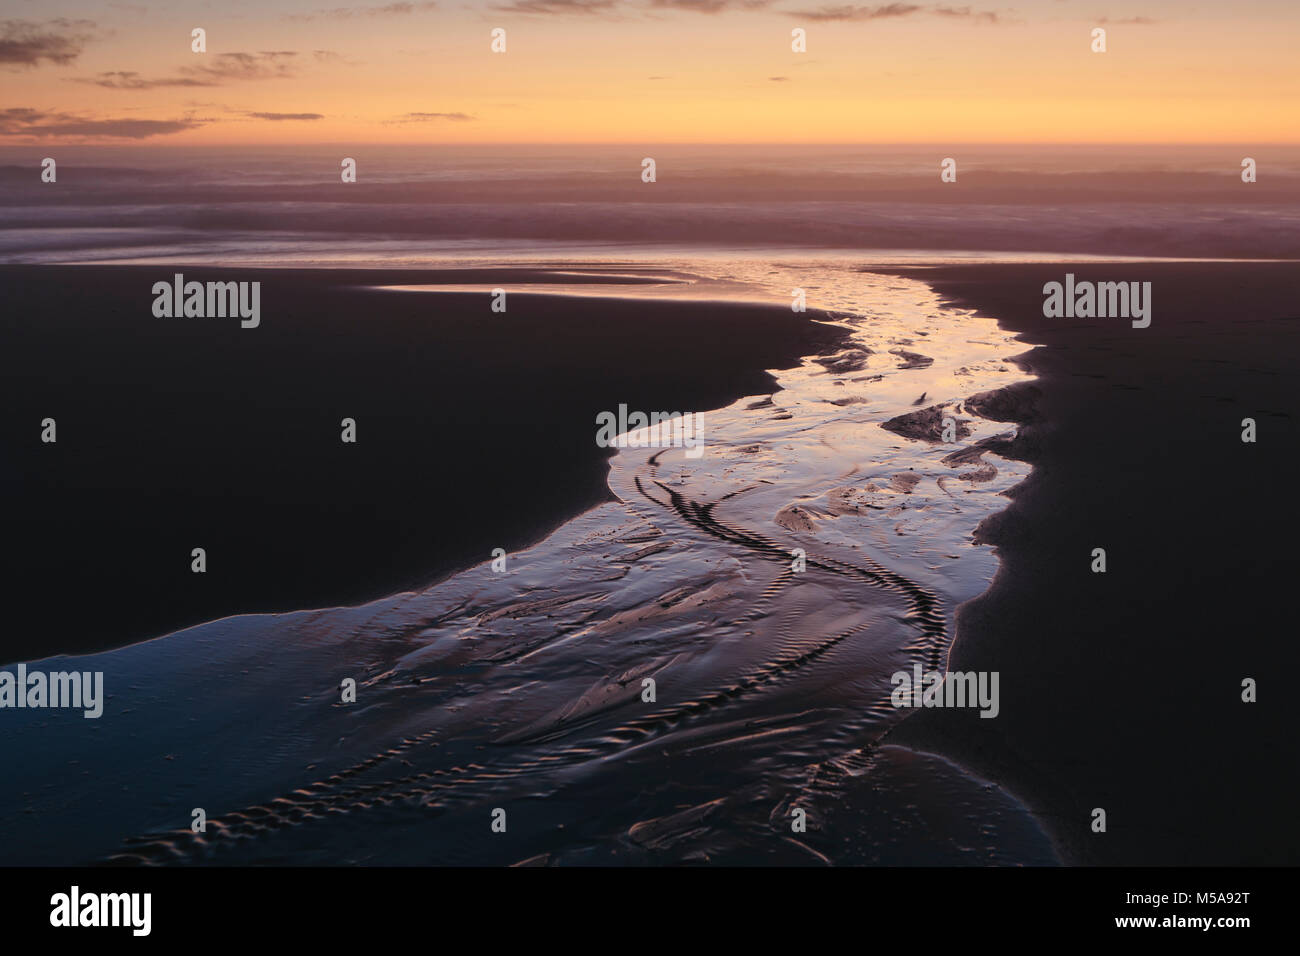 Landscape with stream flowing into ocean surf at dusk. - Stock Image